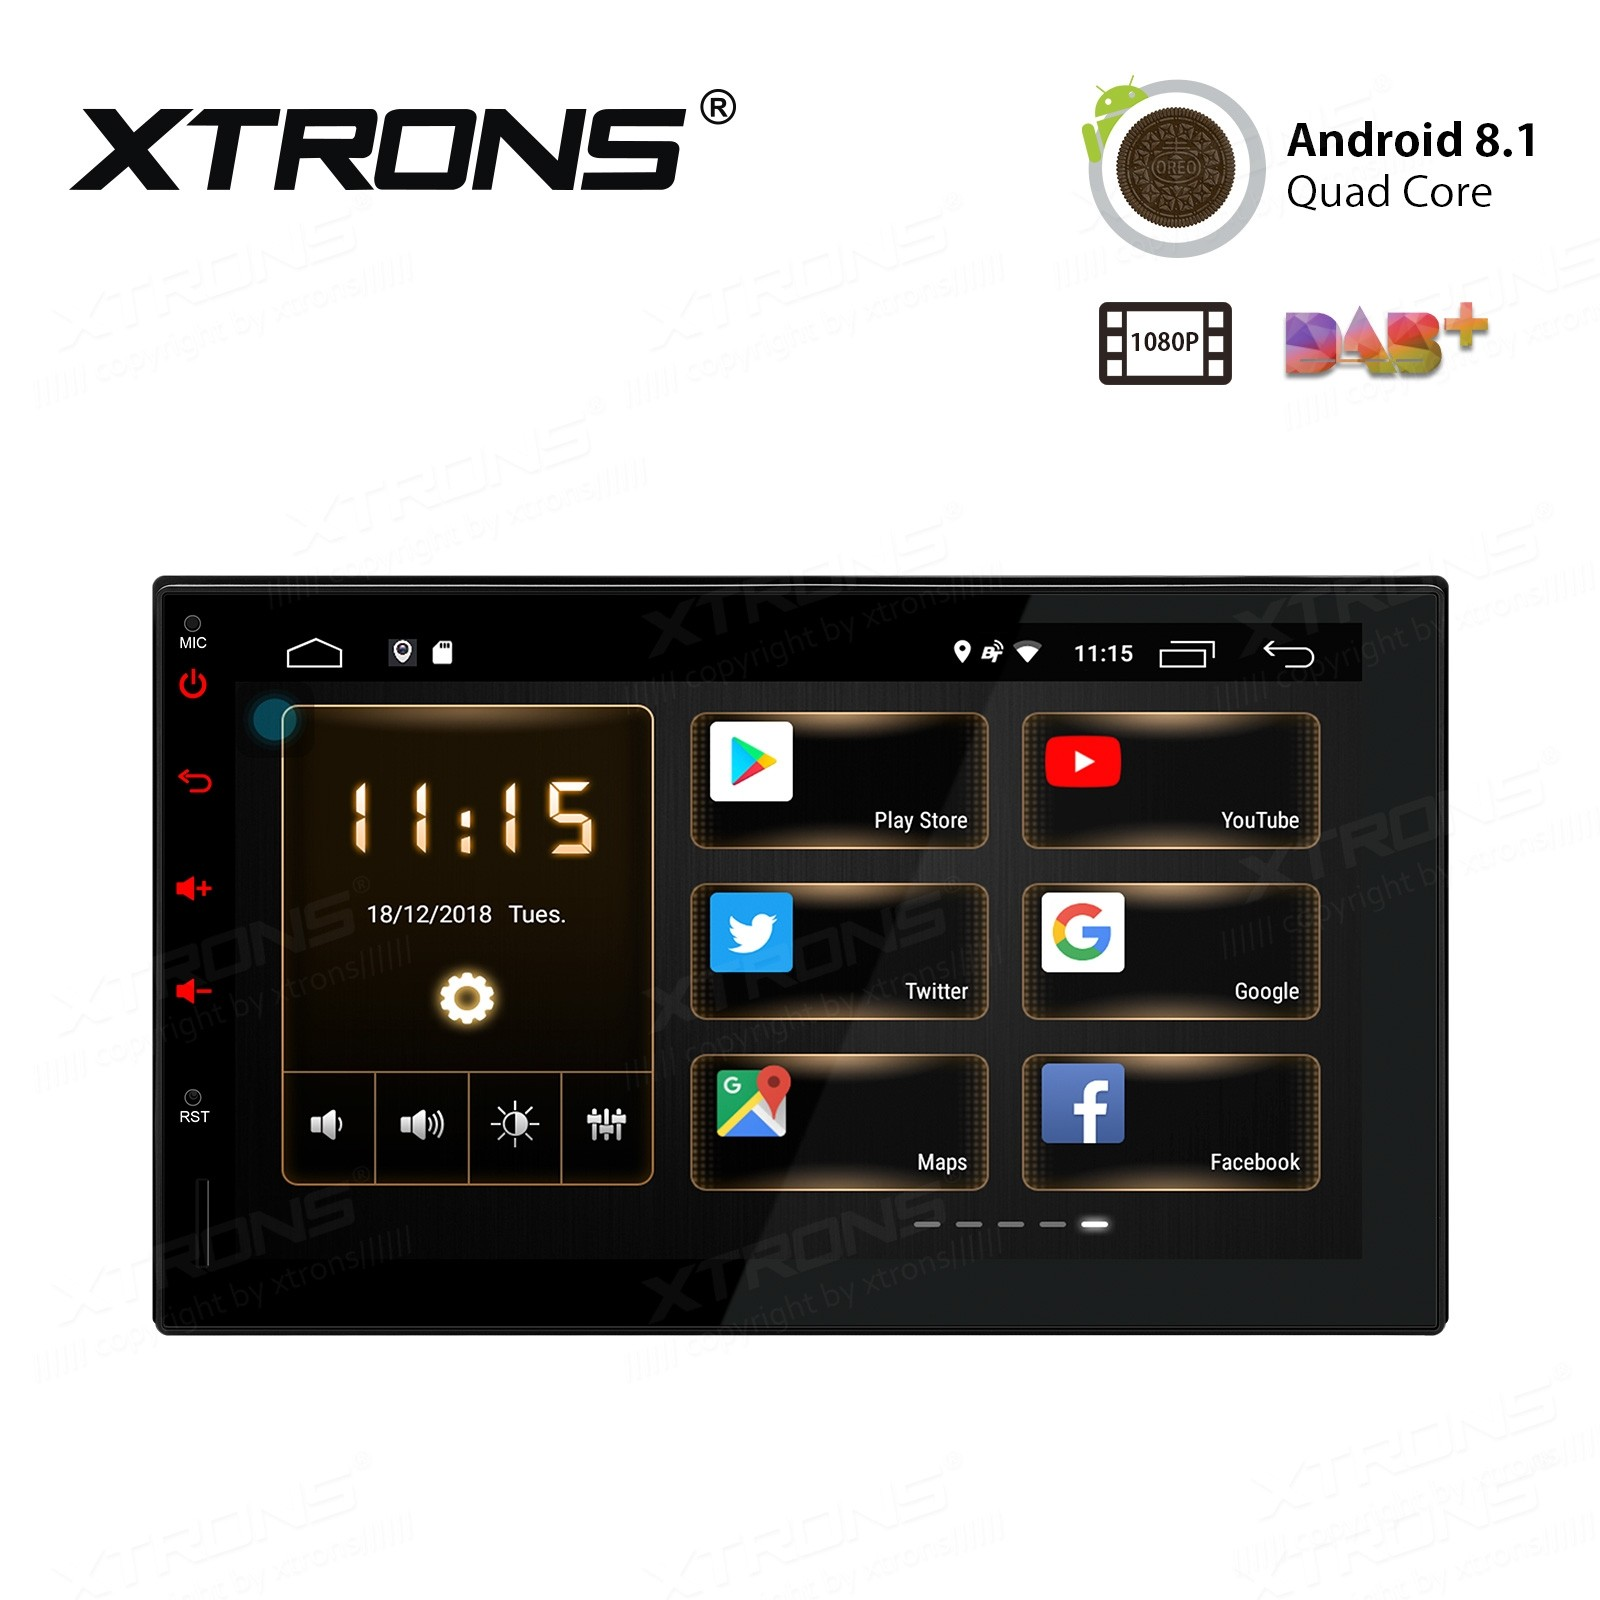 "7"" Android 8.1 HD Screen Multifunctional Android car stereo with Full RCA Output"